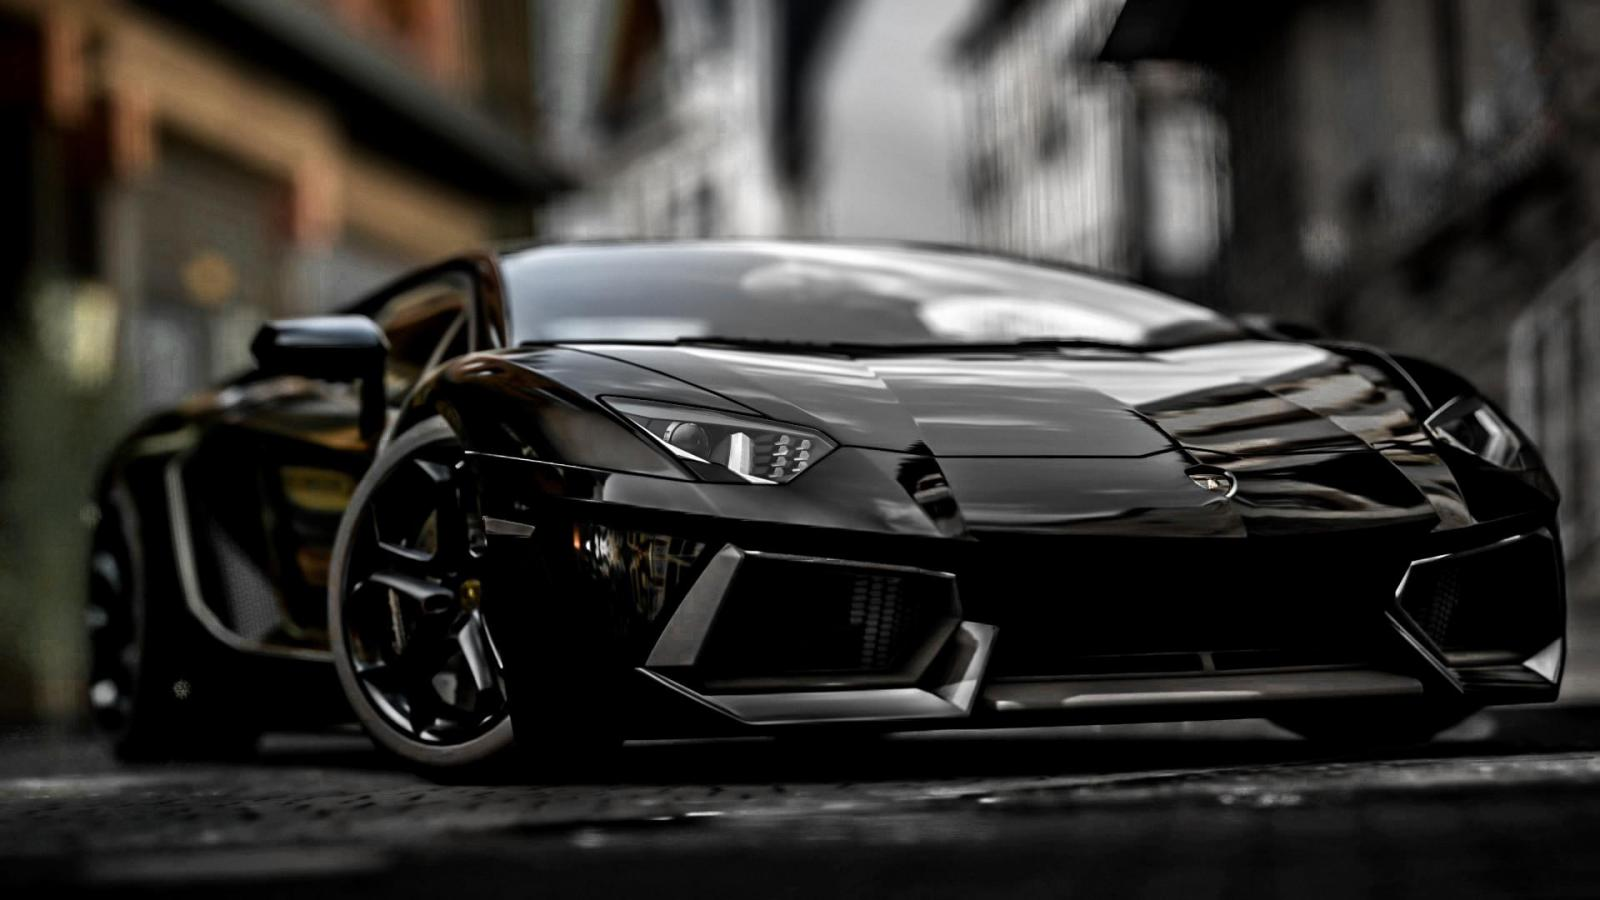 lamborghini aventador price in usa | new cars pictures